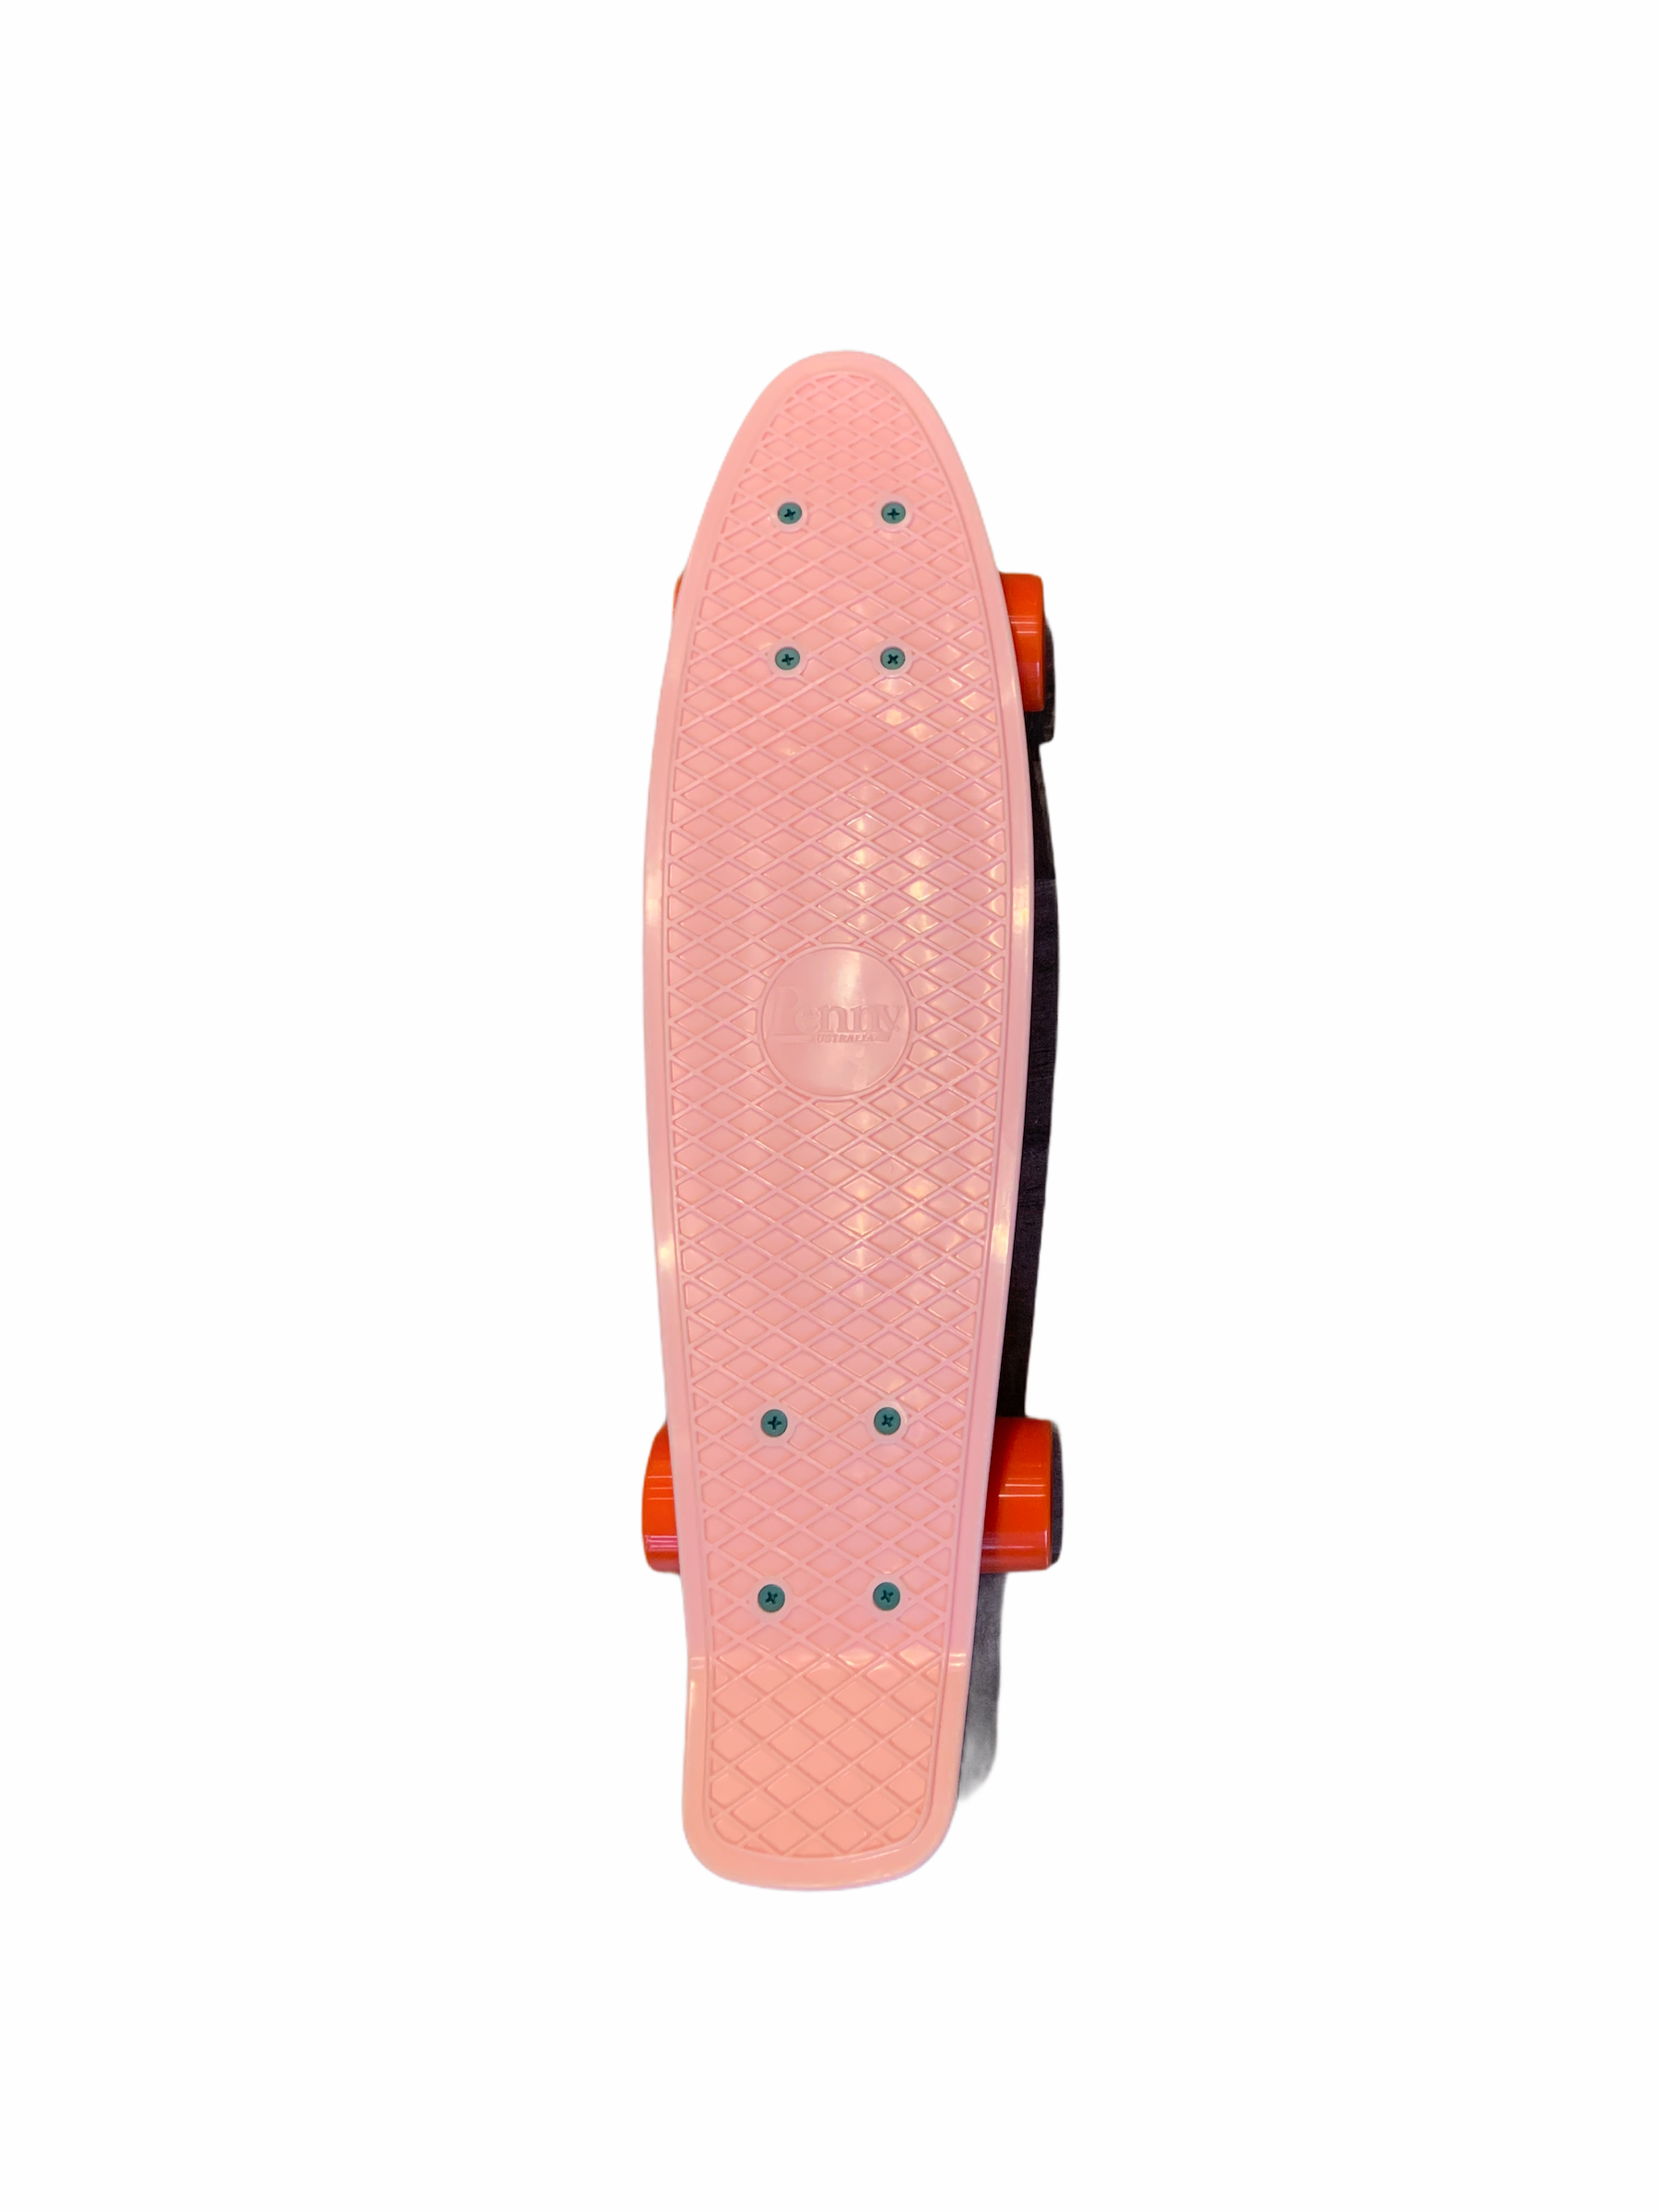 "22"" Penny Skateboards Cactus Wonderlust / pink & orange"